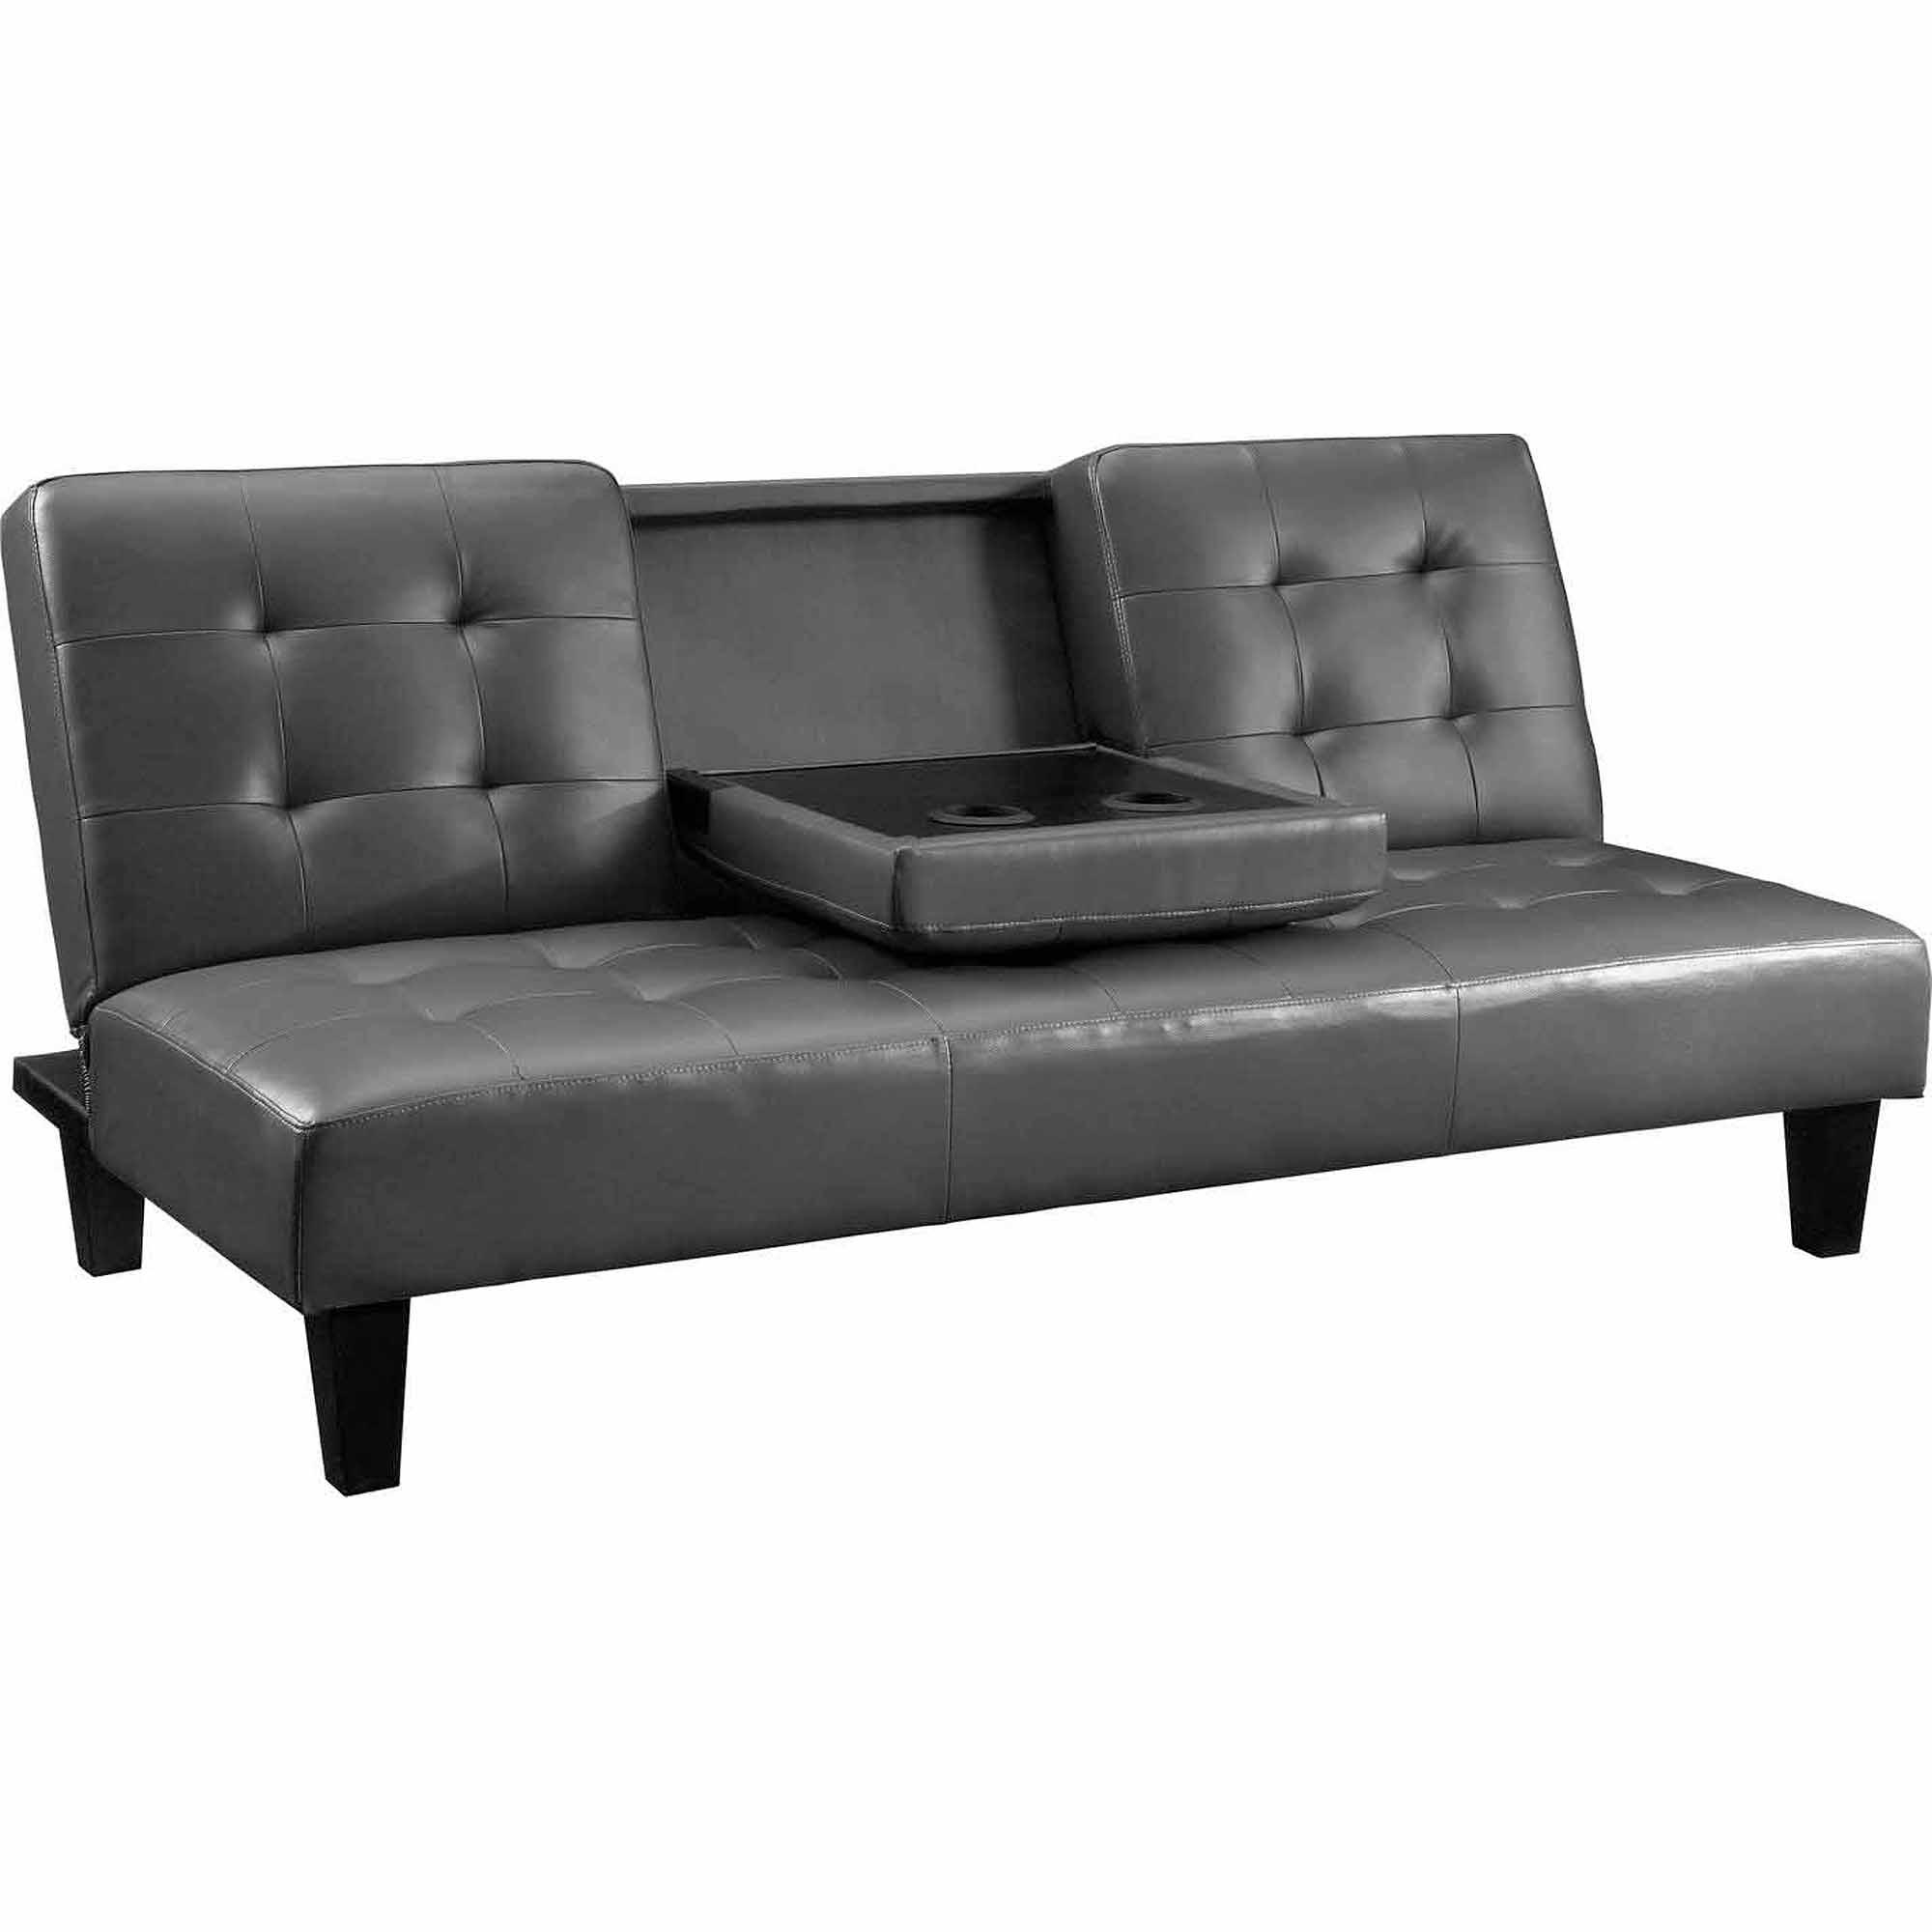 Sofas Center : Emily Faux Leather Convertiblen Sofa Bedleather Intended For Faux Leather Futon Sofas (Image 17 of 20)